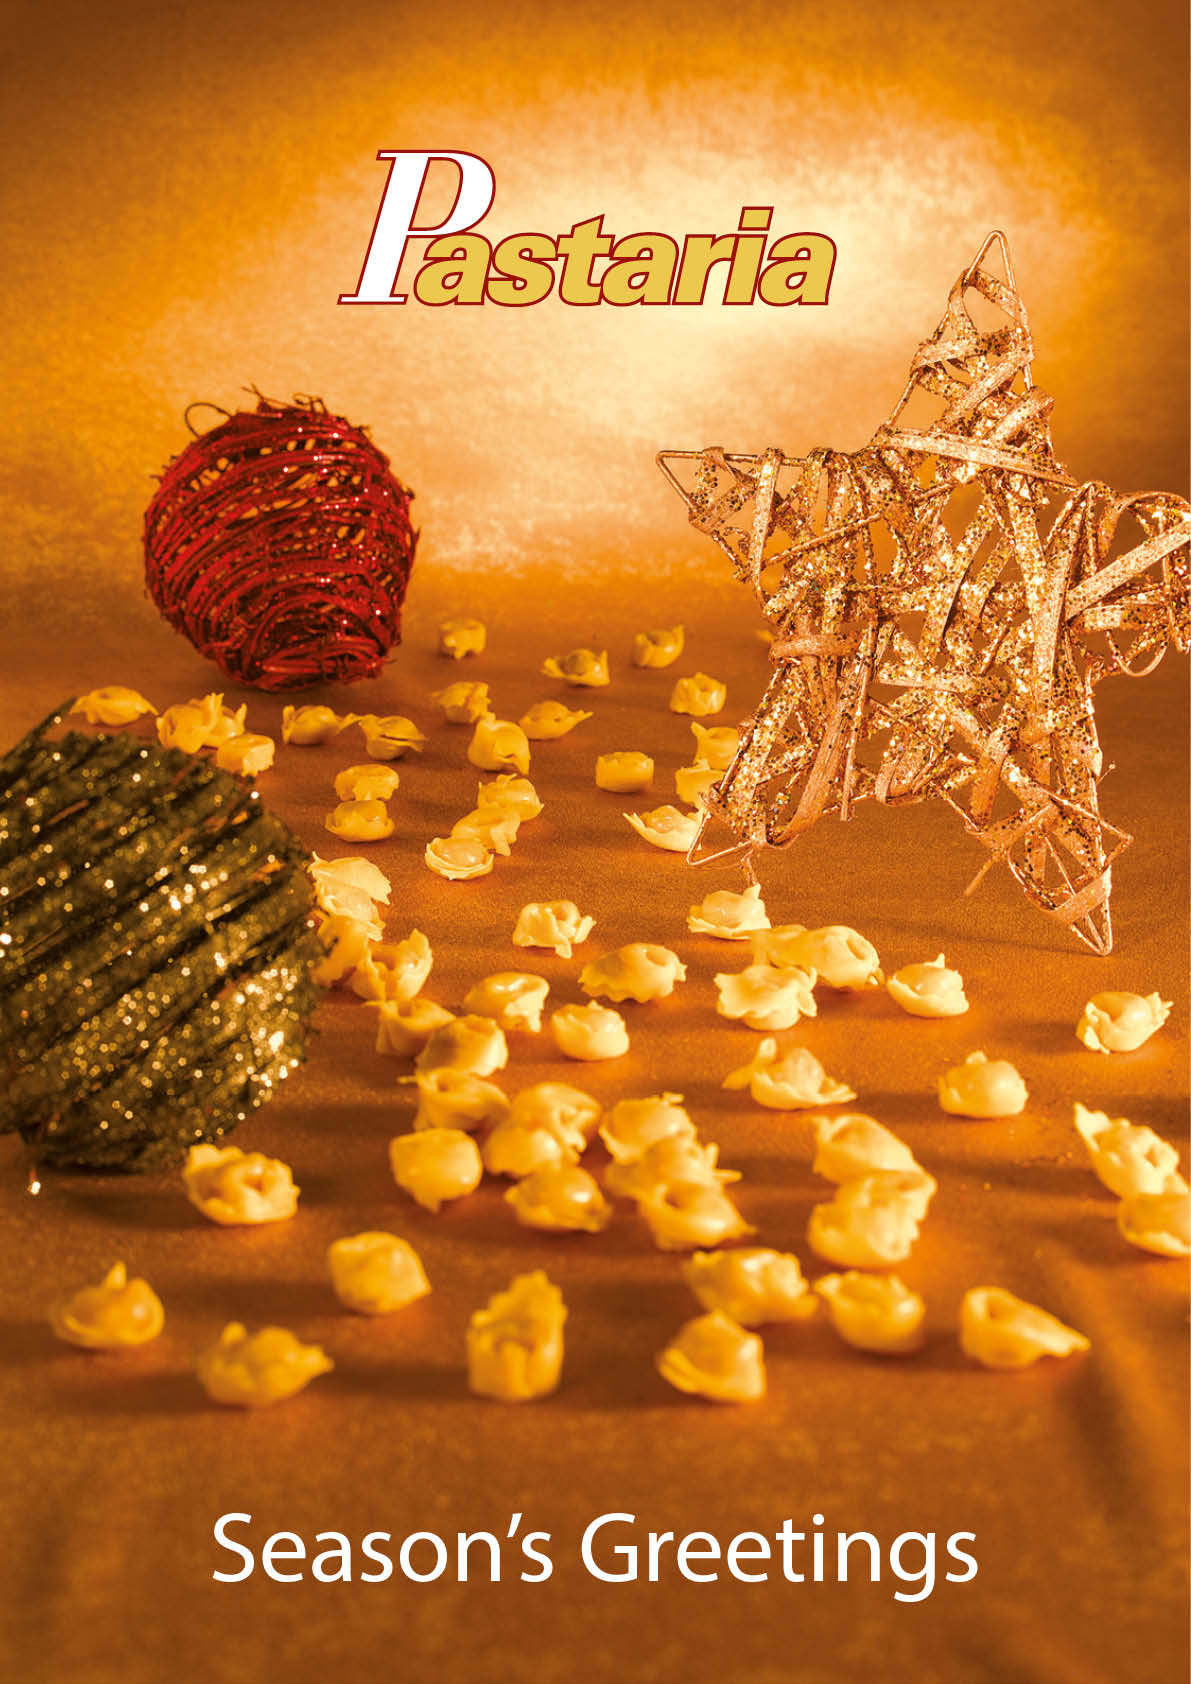 pastaria_auguri_natale_season's_greetings